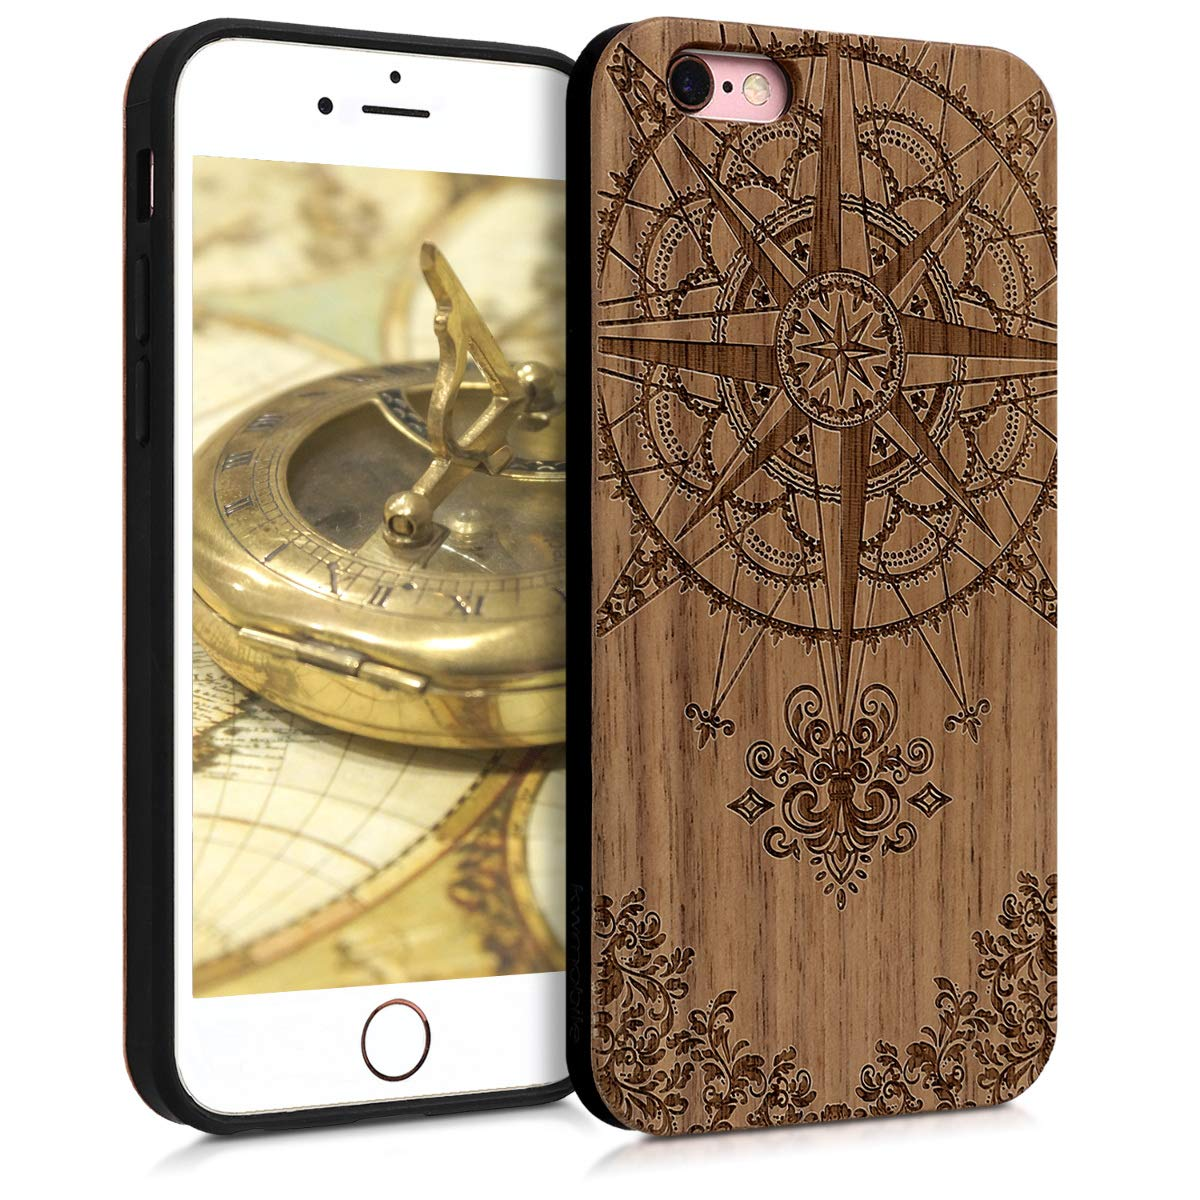 kwmobile Wooden Protection case for Apple iPhone 6 / 6S - Hard case with TPU Bumper Baroque Compass Walnut